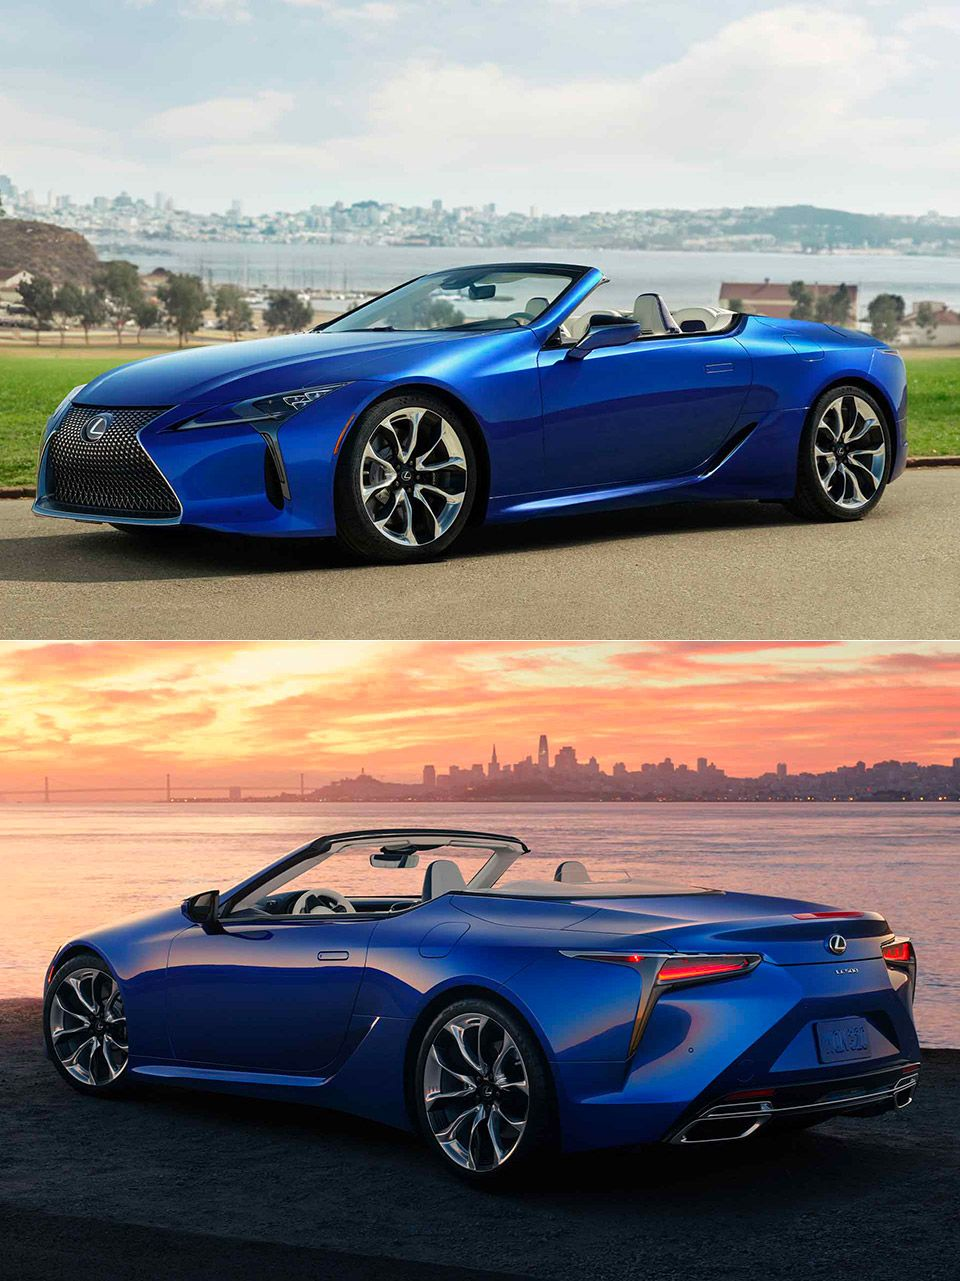 2021 Lexus LC 500 Convertible revealed, has top that can